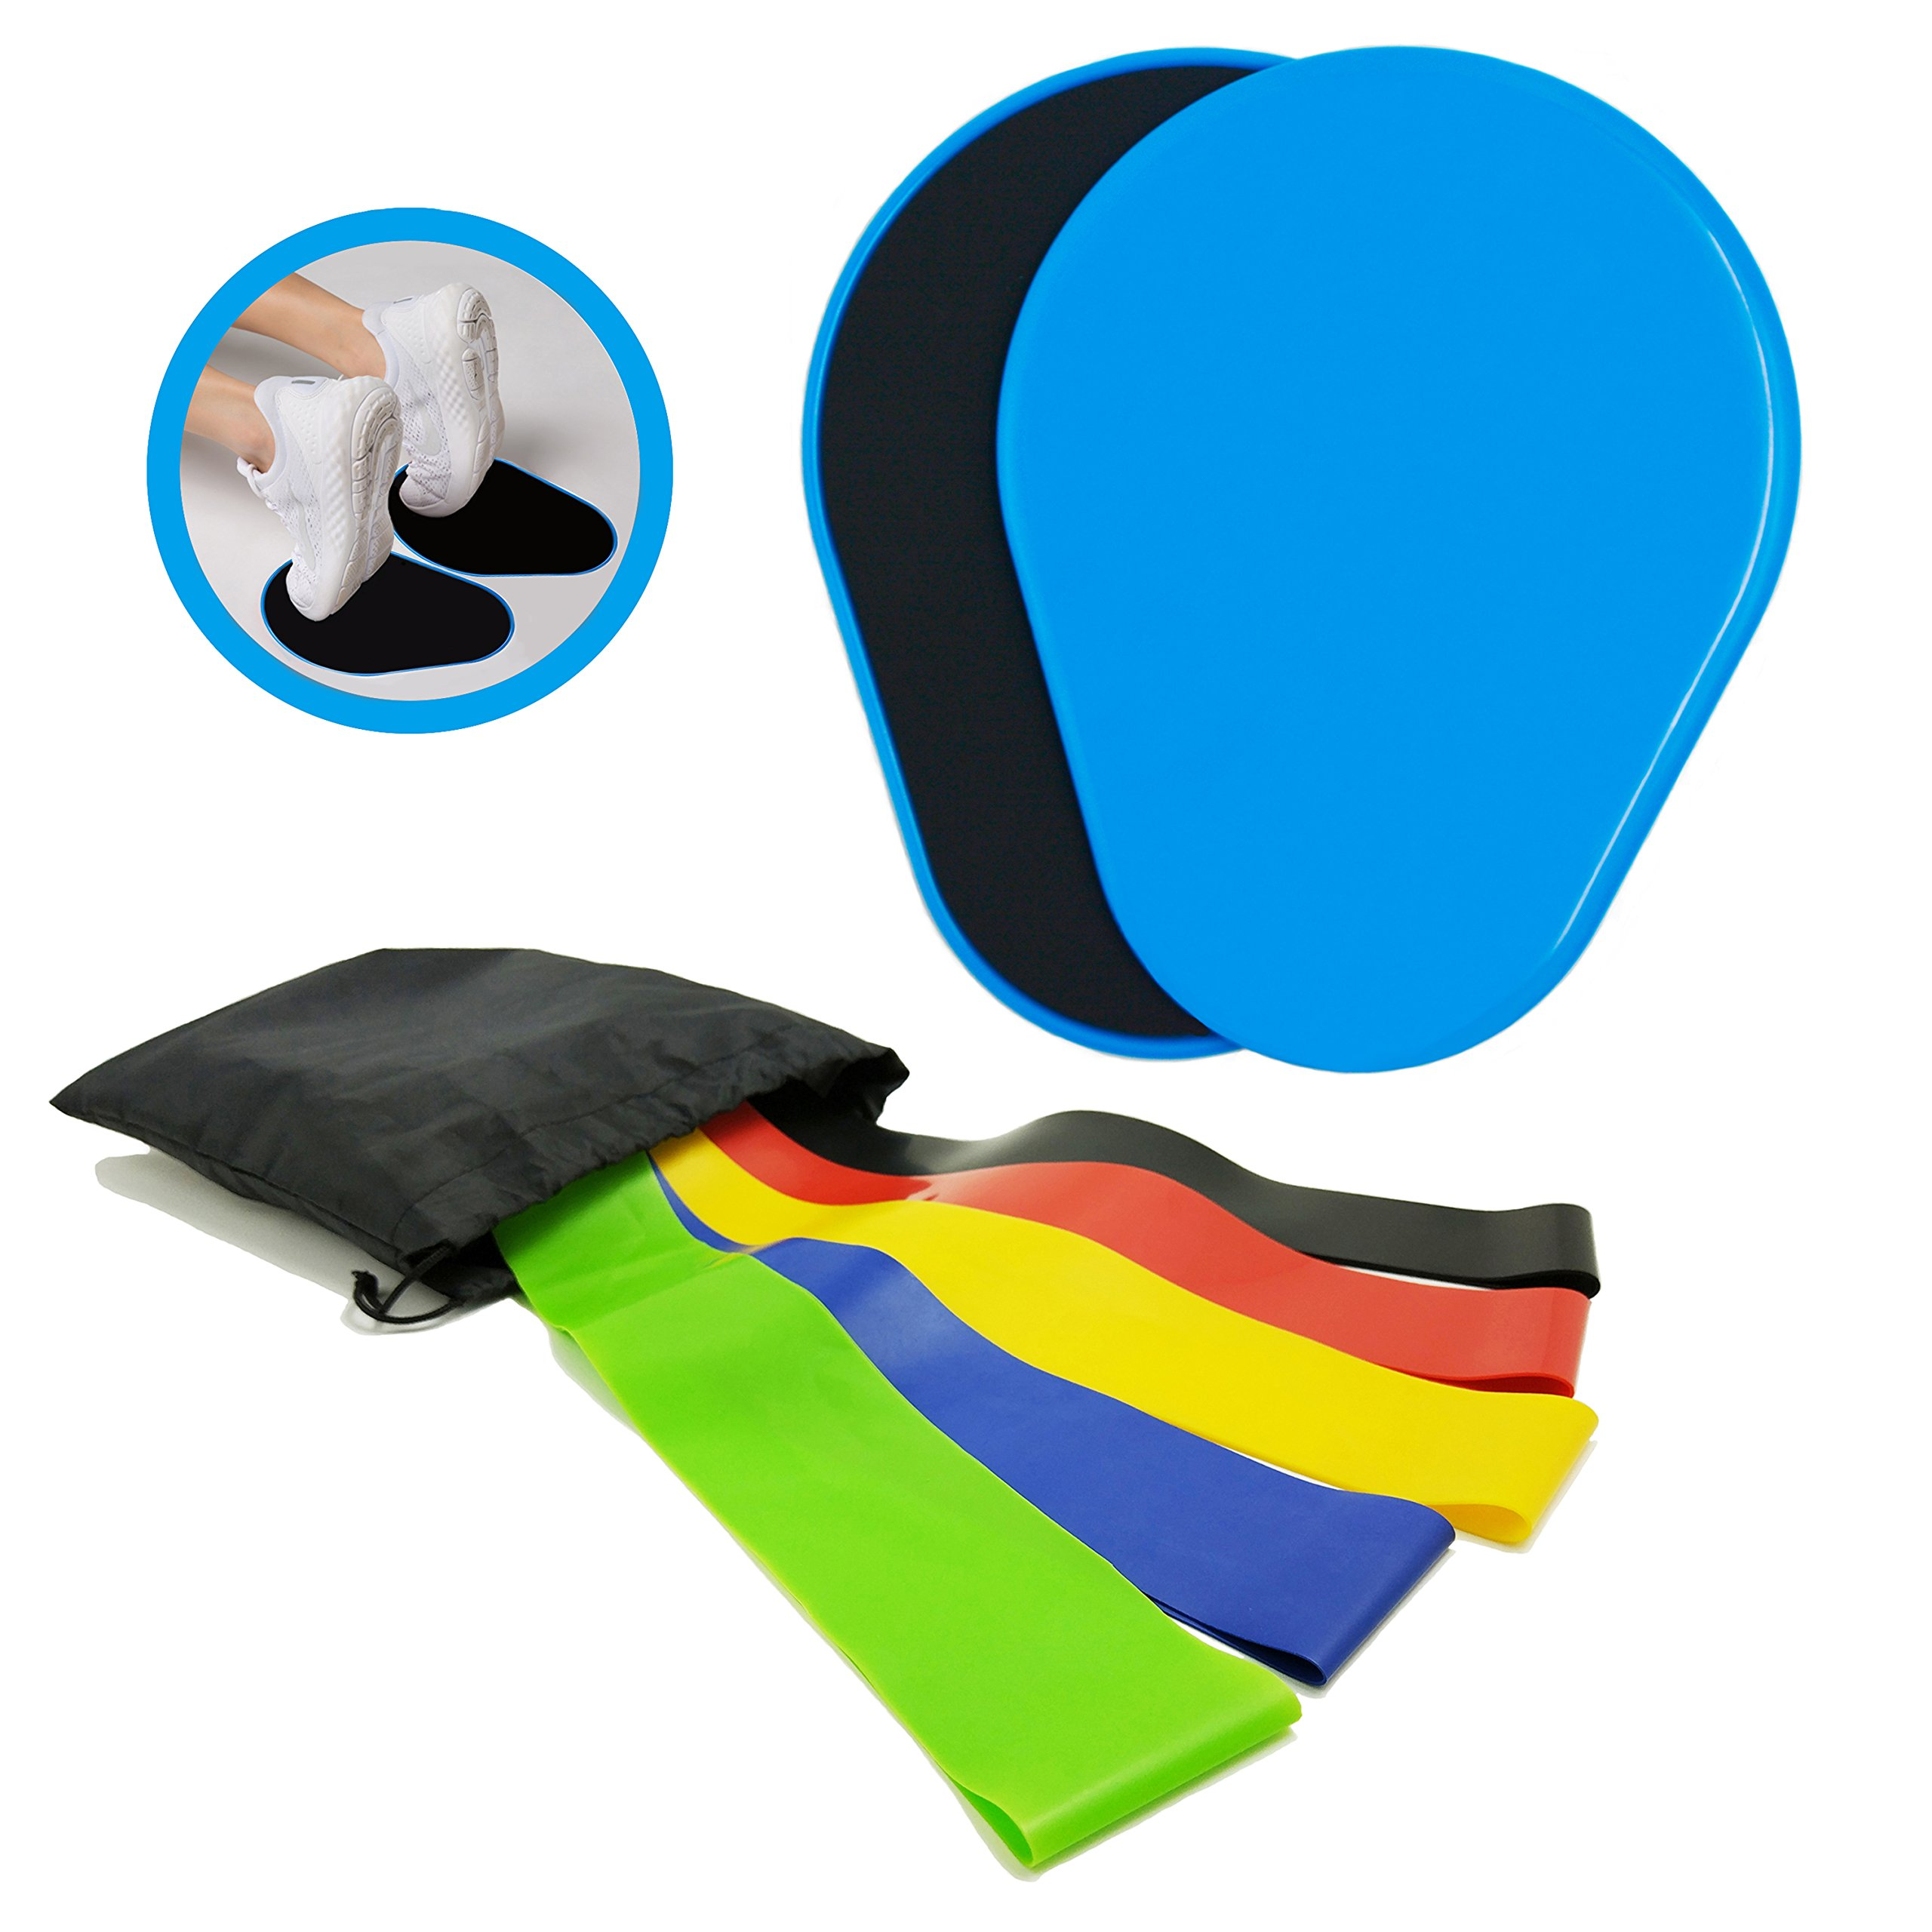 HiFans 2 Gliding Discs Core Sliders and 5 Exercise Resistance Loop Bands, Abdominal & Total Body Workout Lightweight and Portable Exercise Equipment for Home